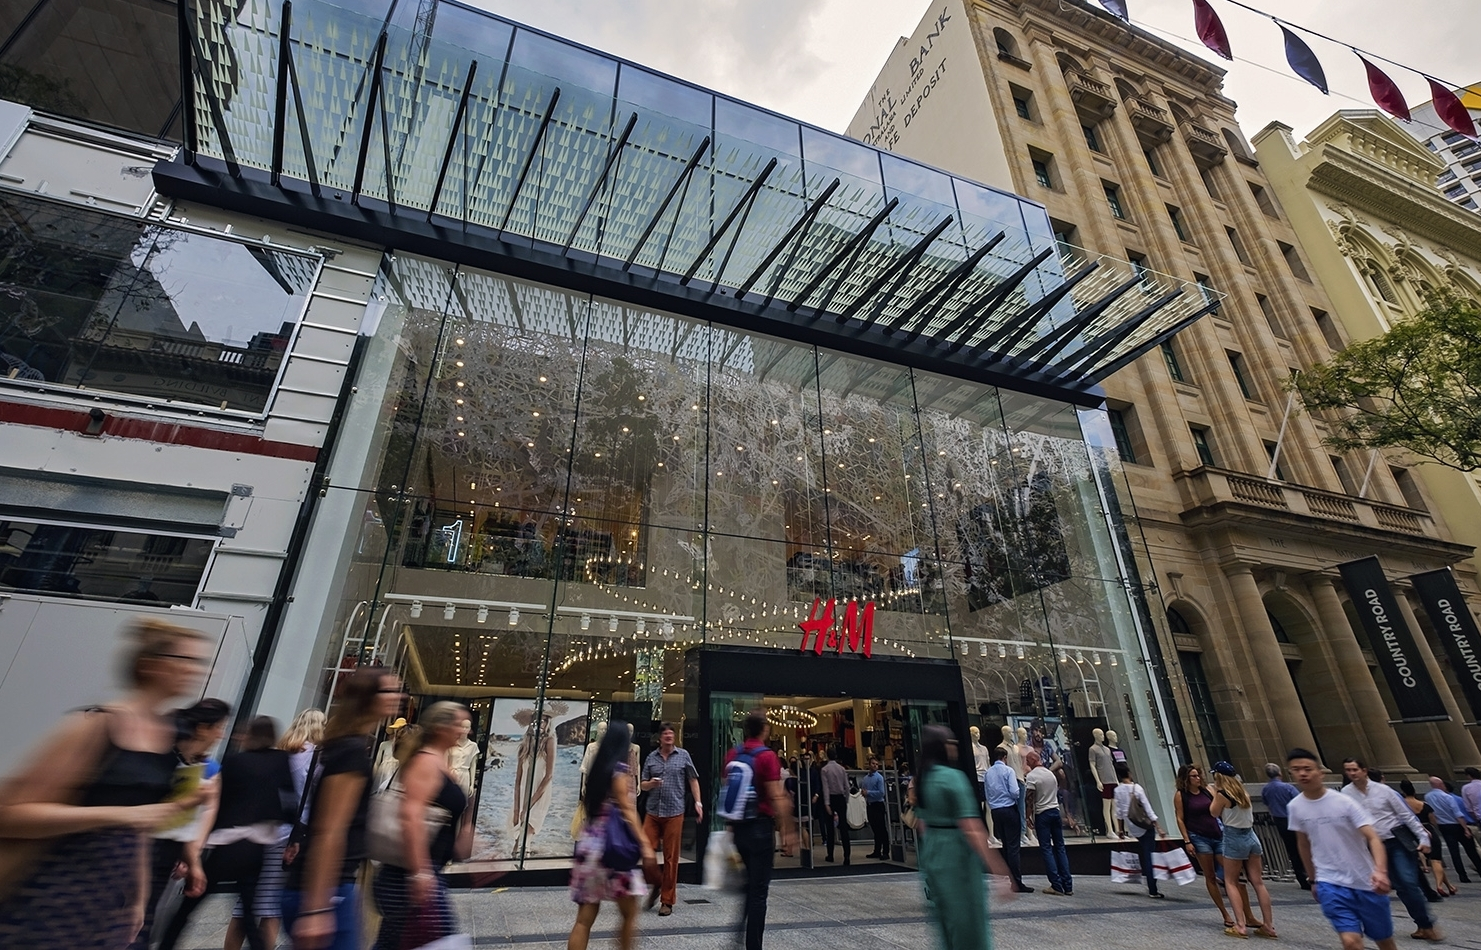 If you are planning a special trip into The City, be sure to contact individual businesses to confirm opening hours. If you need further information about Queen Street Mall or help booking accommodation, tours and more, contact or visit the official tourism information centre – located next to Zara in Queen Street Mall.